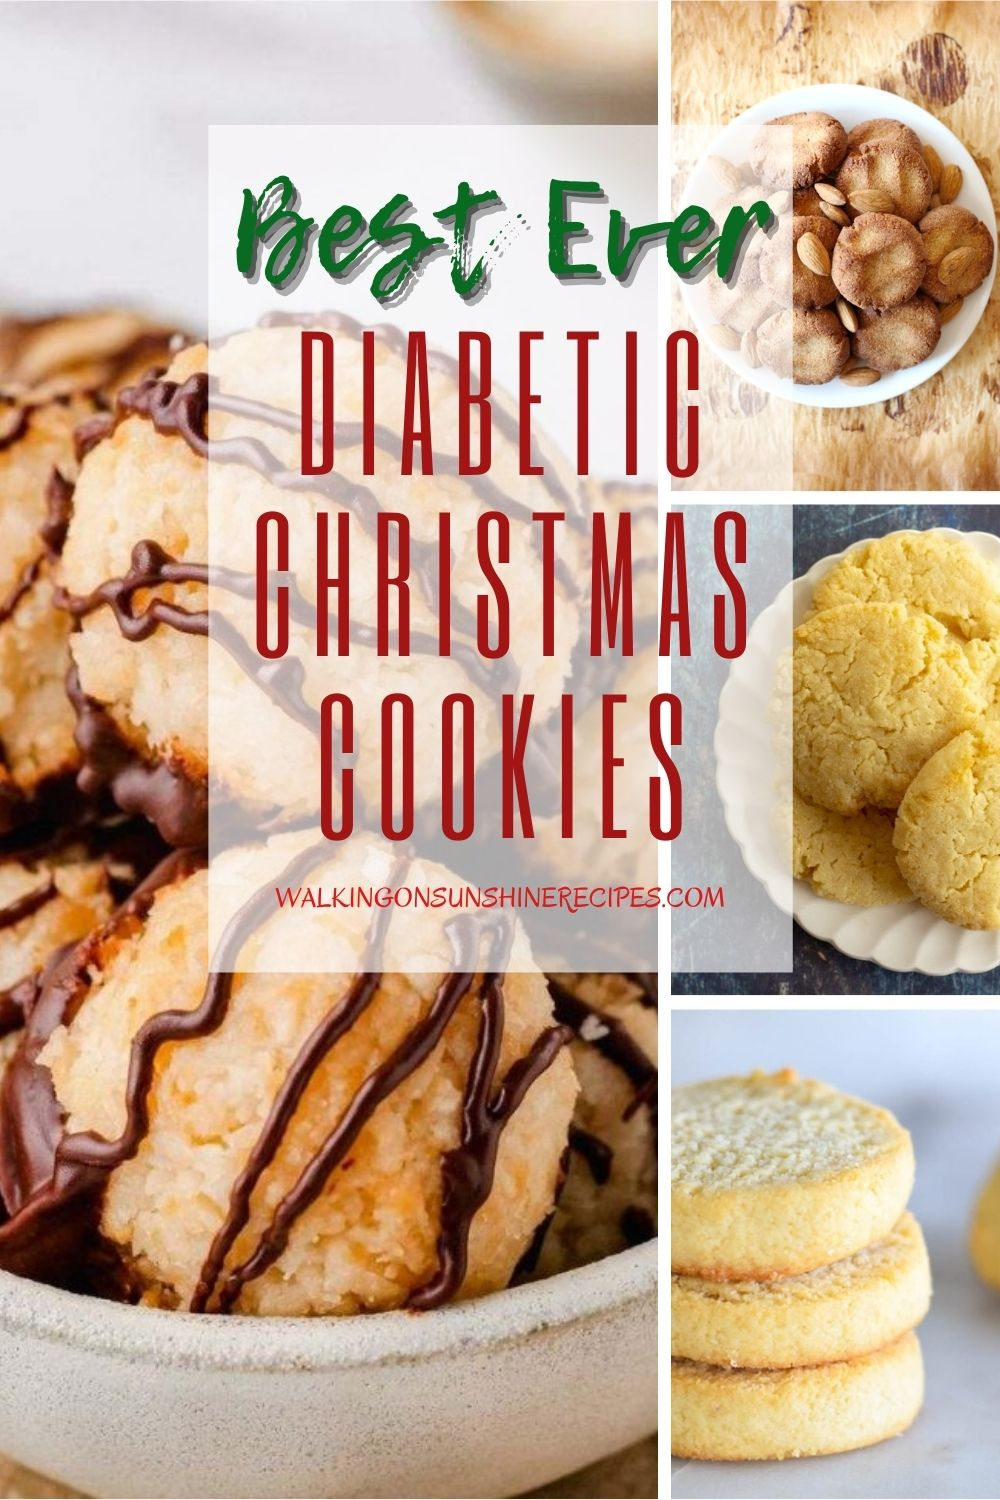 4 different cookie recipes that are diabetic friendly for the holidays.